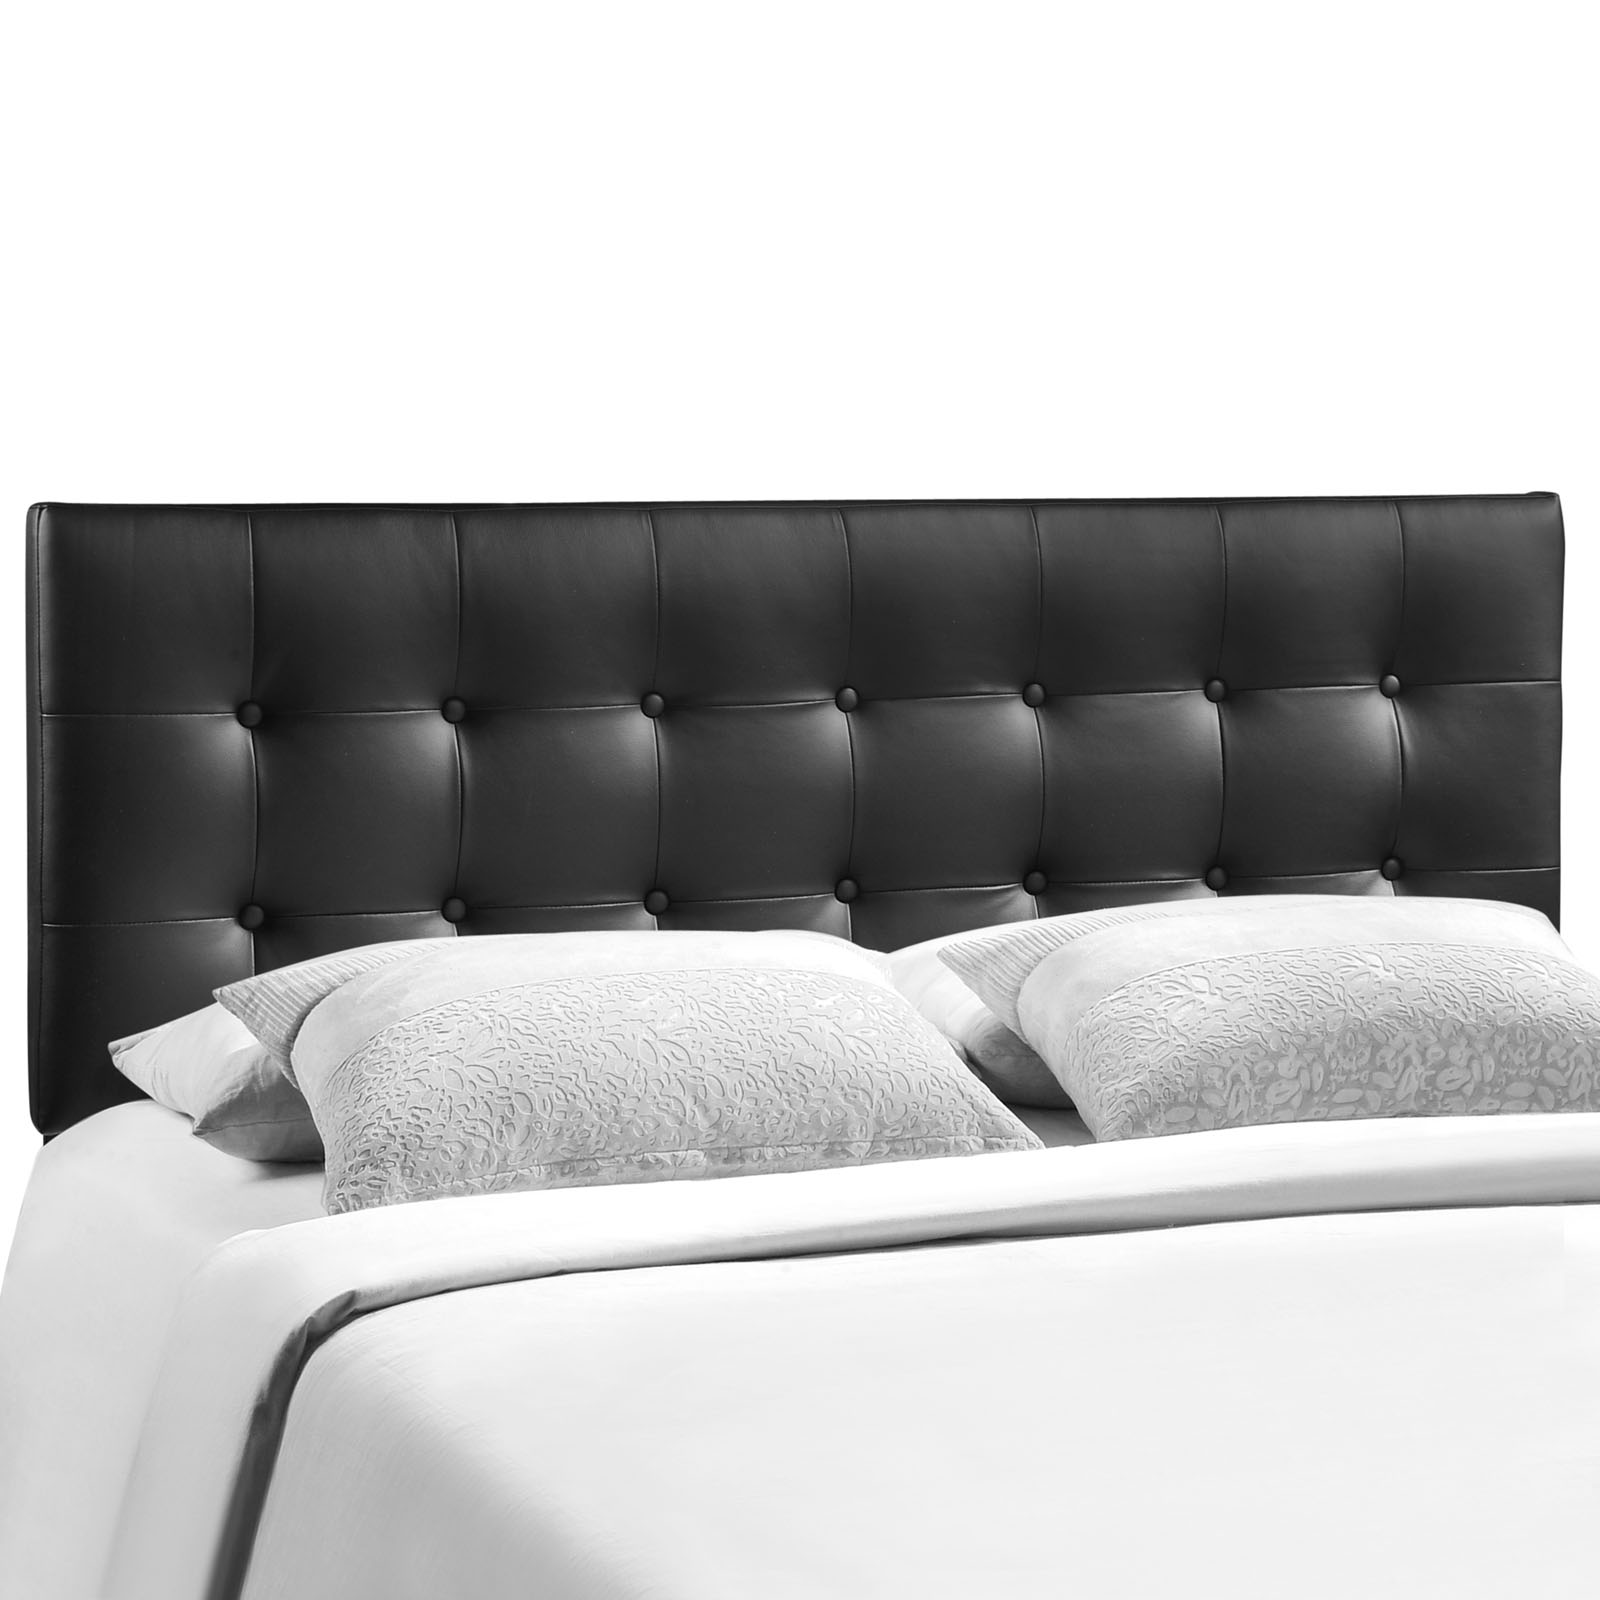 Modern Contemporary King Size Vinyl Headboard, Black Faux Leather